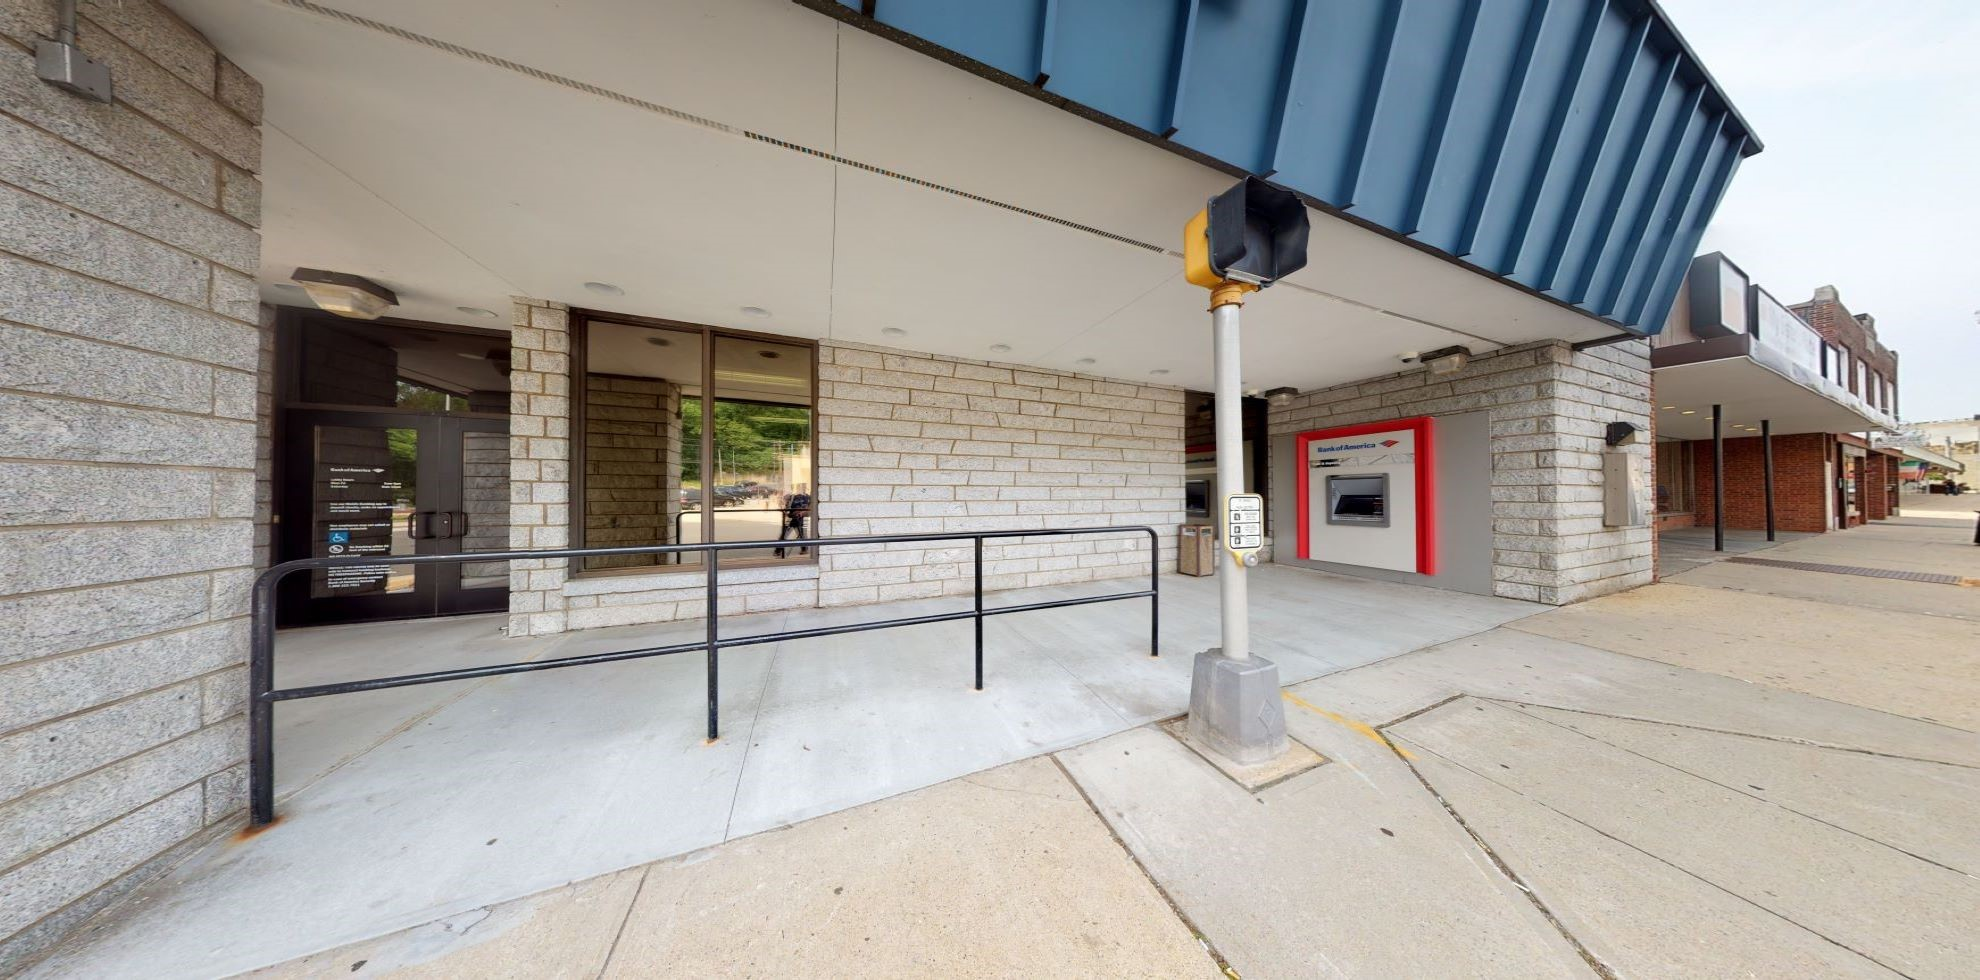 Bank of America financial center with drive-thru ATM | 382 Main St, Ansonia, CT 06401